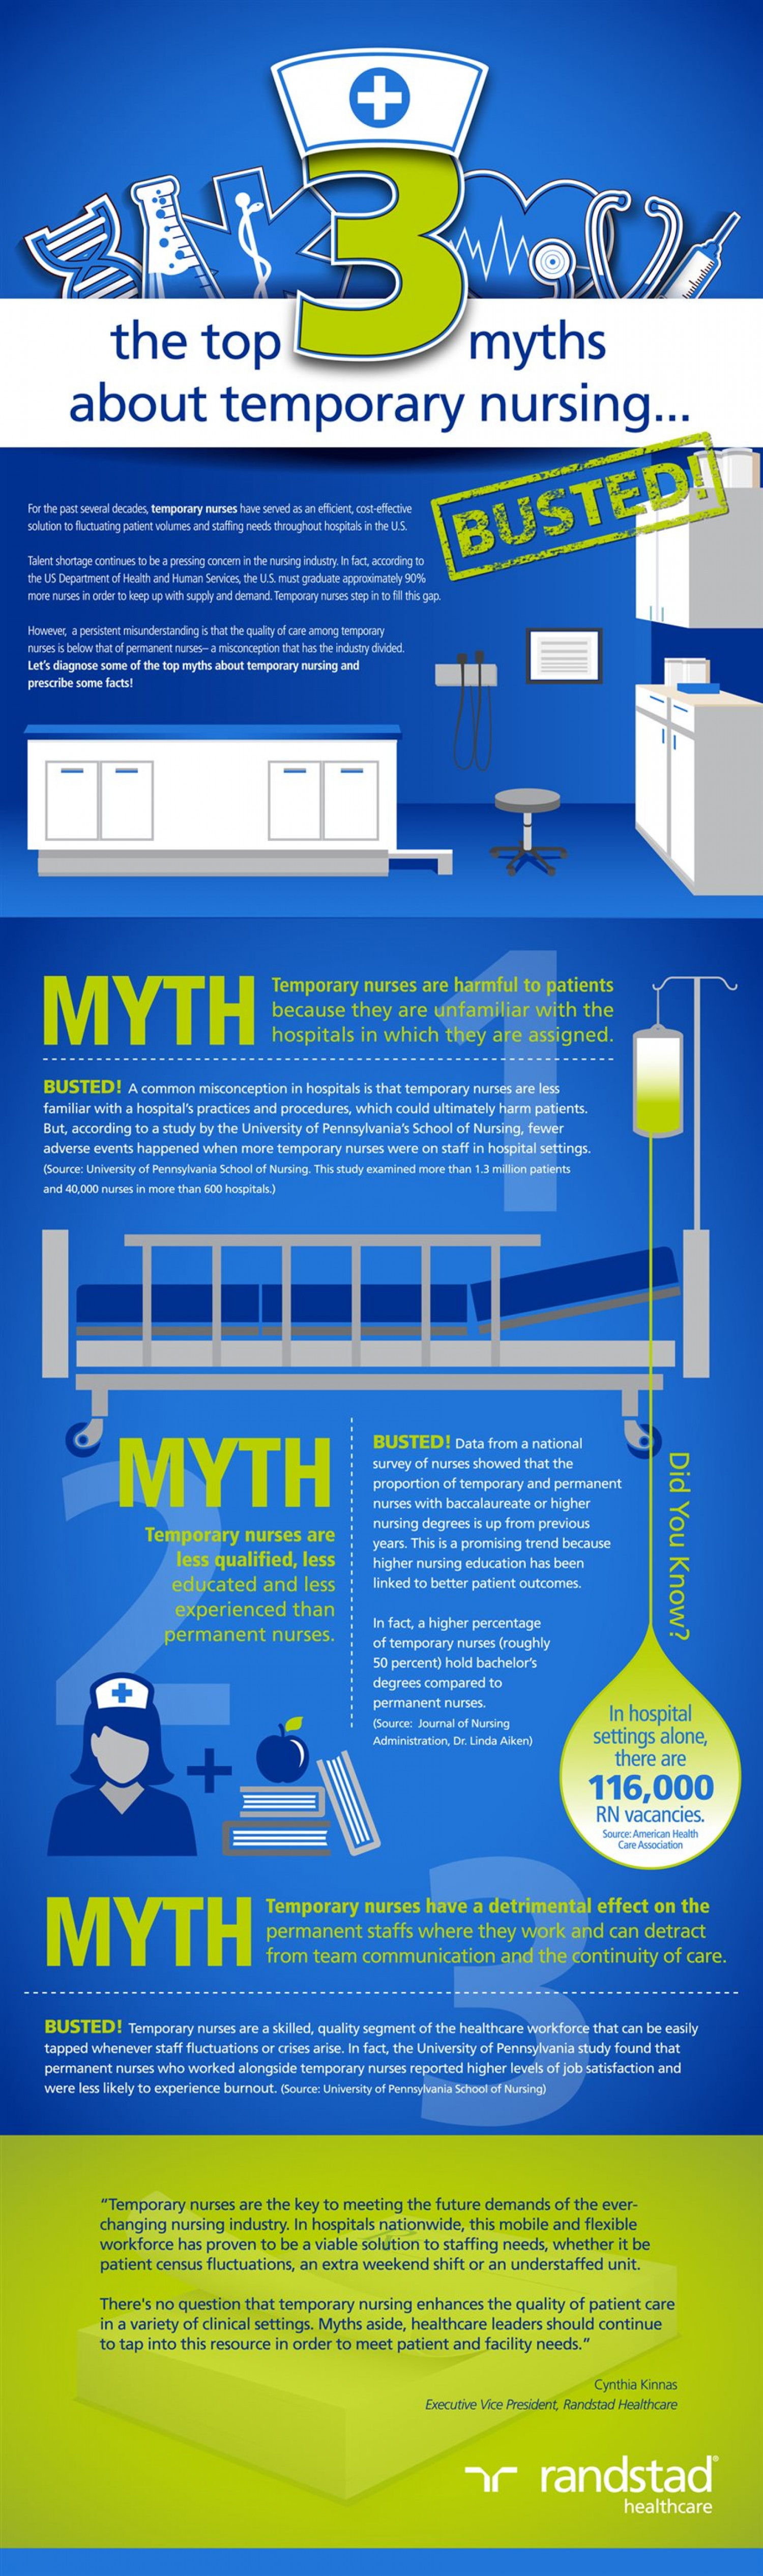 The Top 3 Myths About Temporary Nursing Infographic